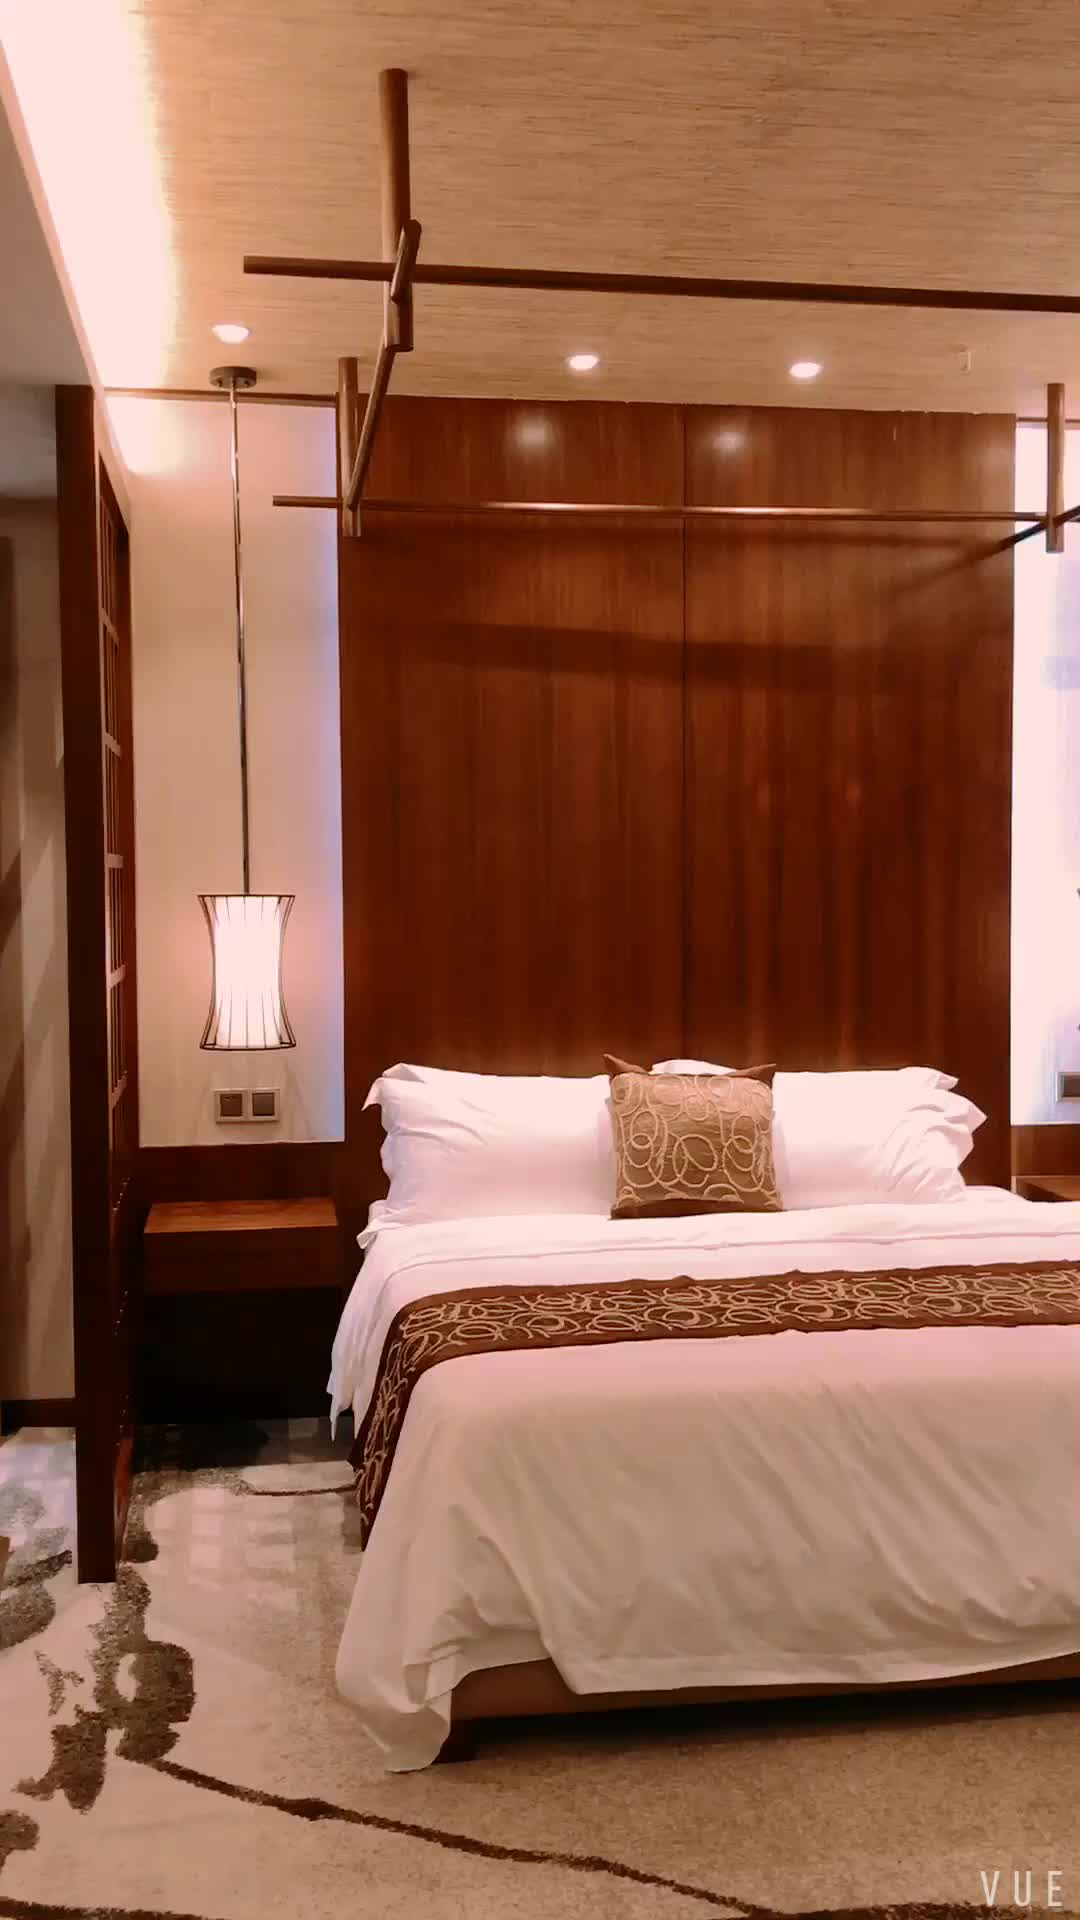 Hotel Room Furniture: New Deluxe Hotel Room Furniture Design(fll-tf-001)